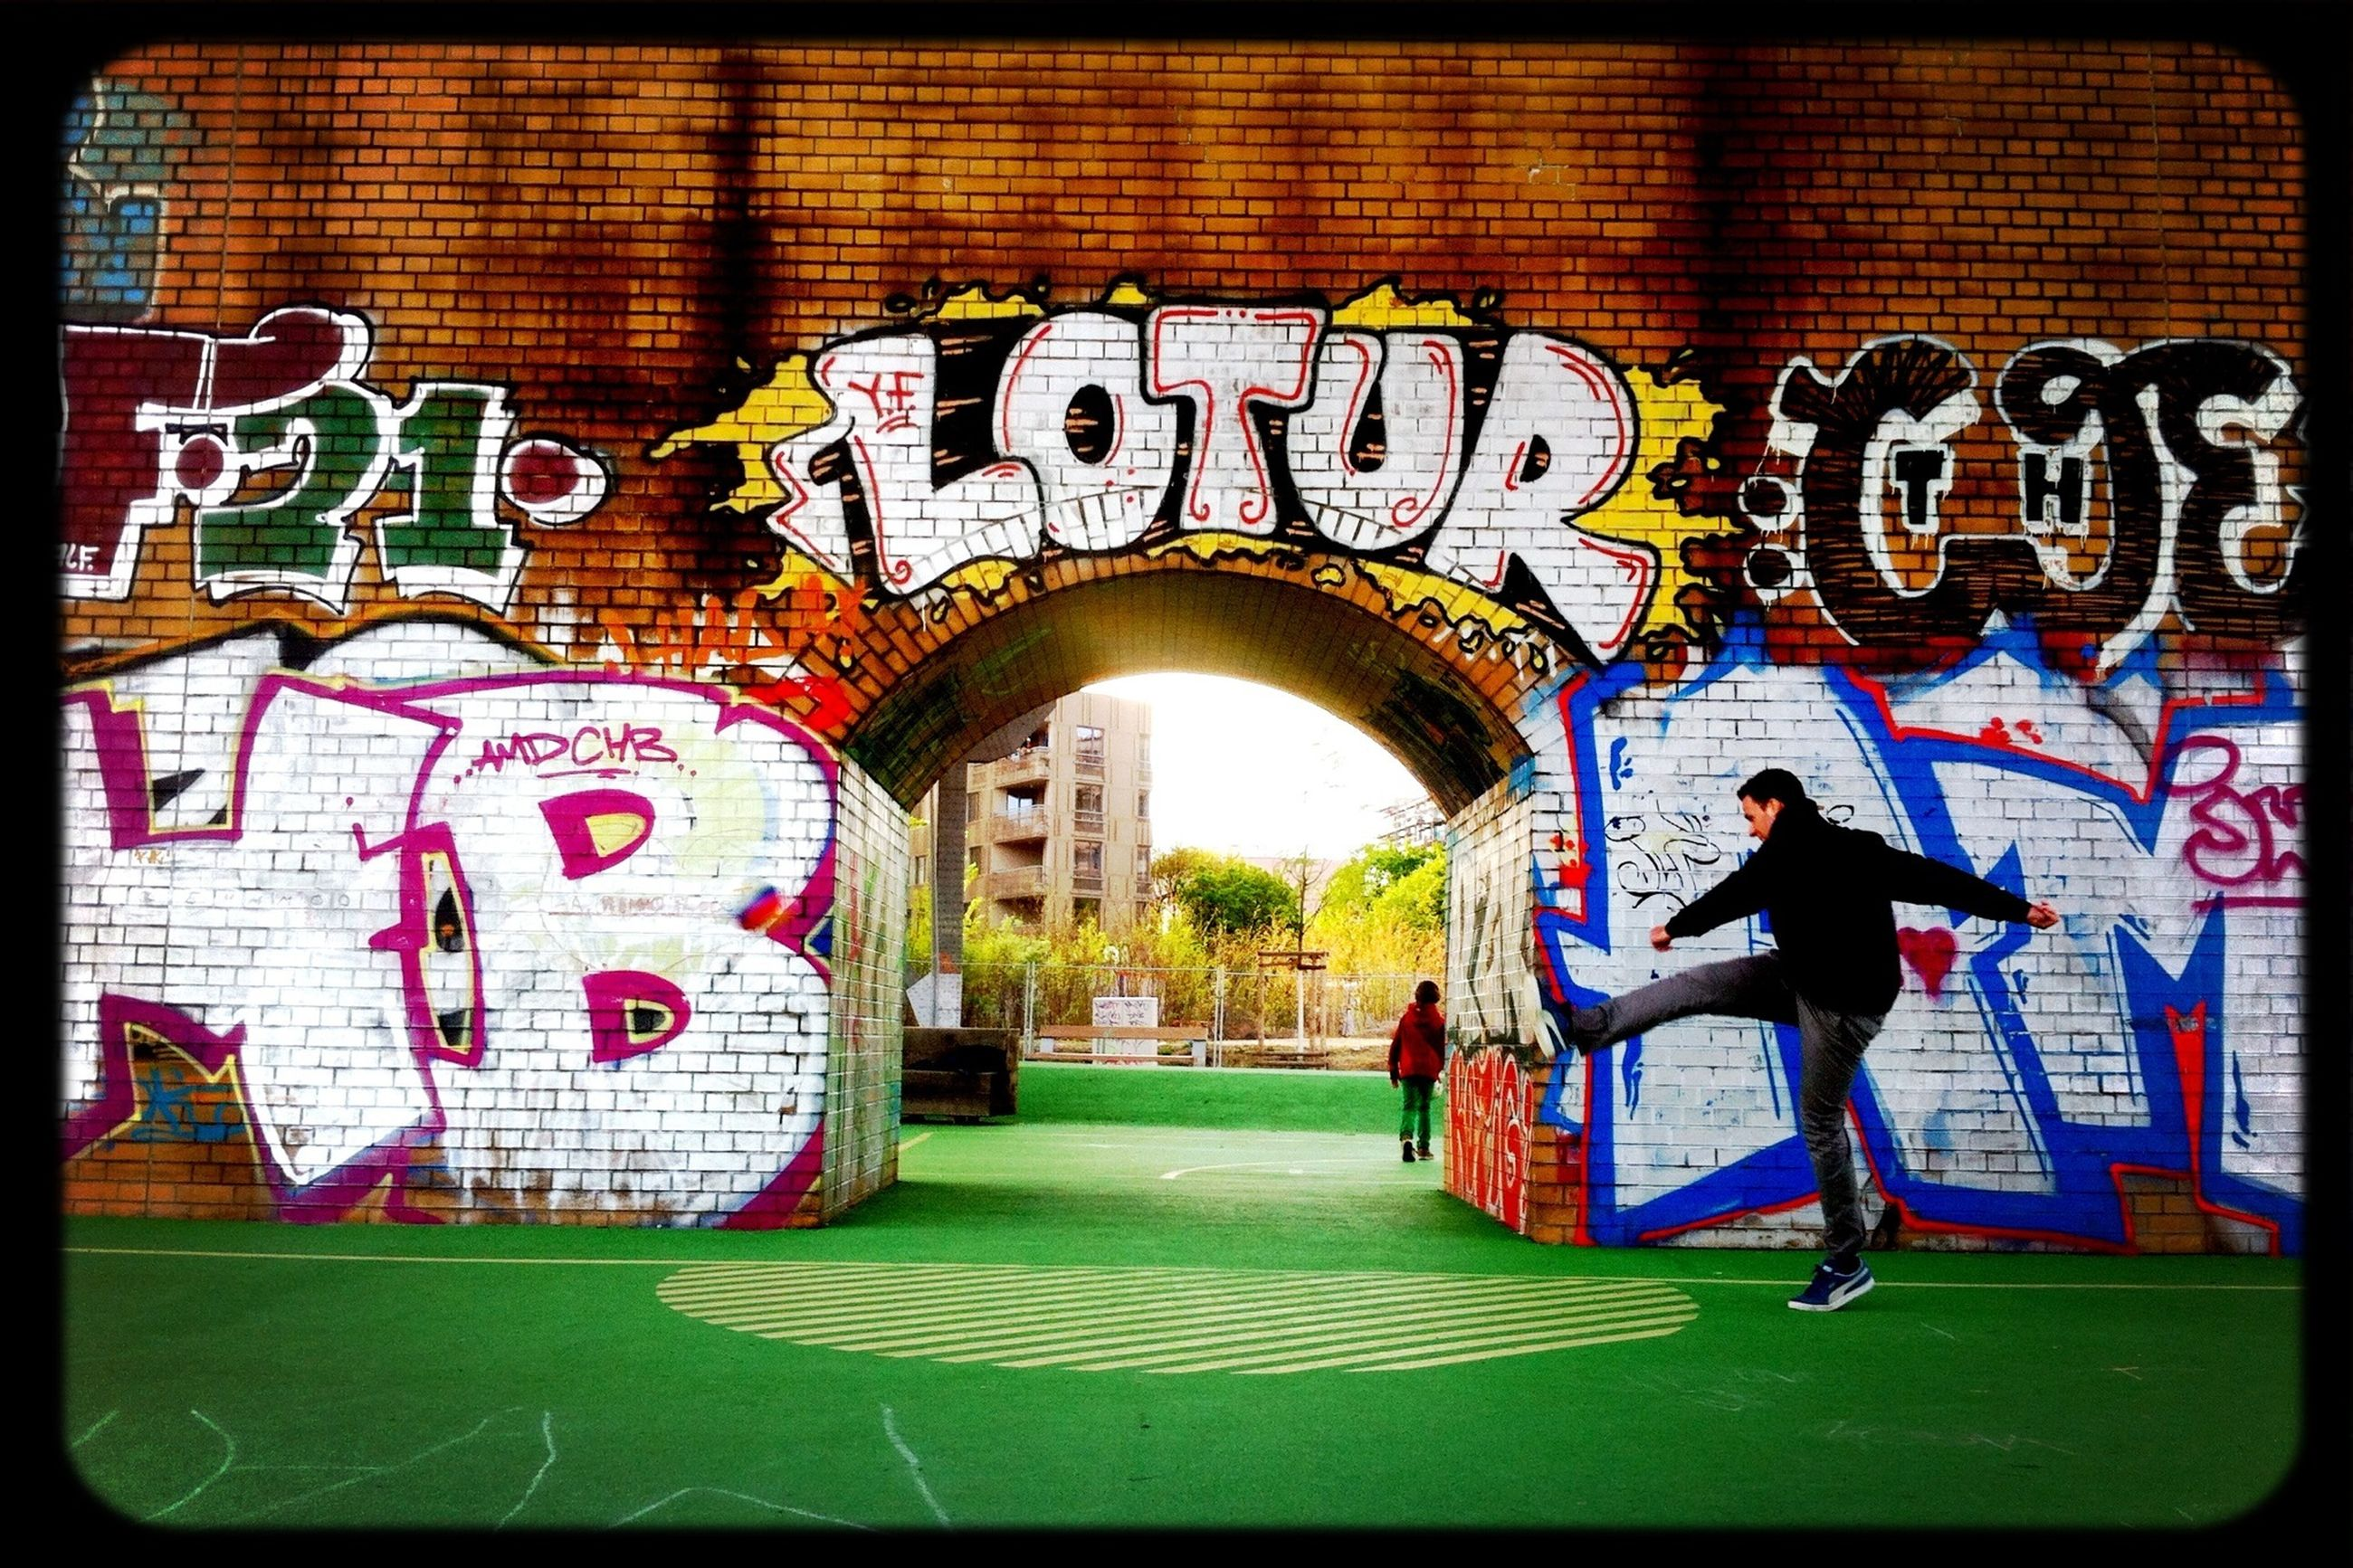 architecture, built structure, building exterior, arch, graffiti, art and craft, art, wall - building feature, entrance, creativity, full length, text, transfer print, outdoors, grass, day, auto post production filter, wall, gate